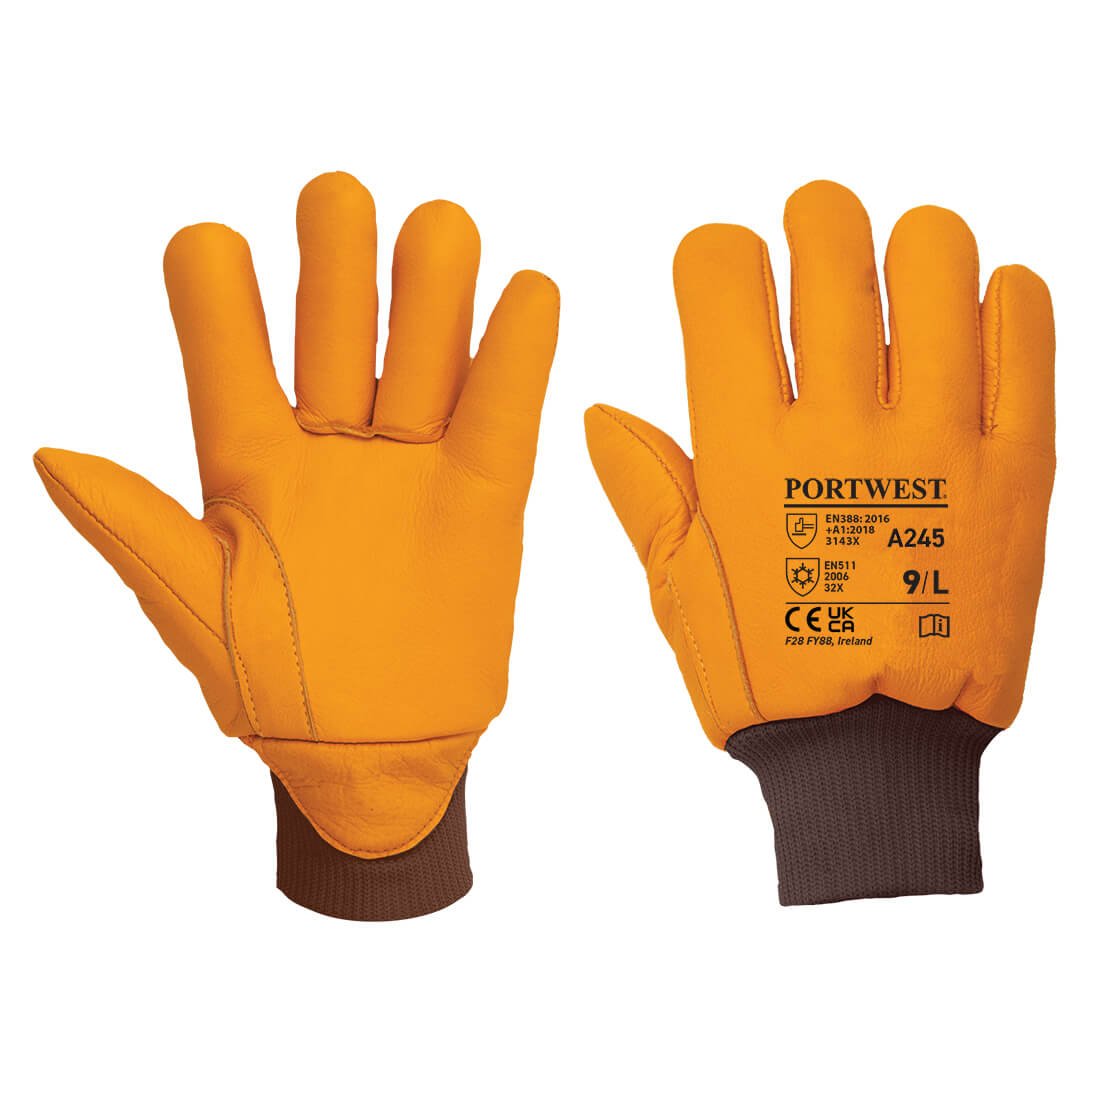 HAND PROTECTION, Thermal Gloves